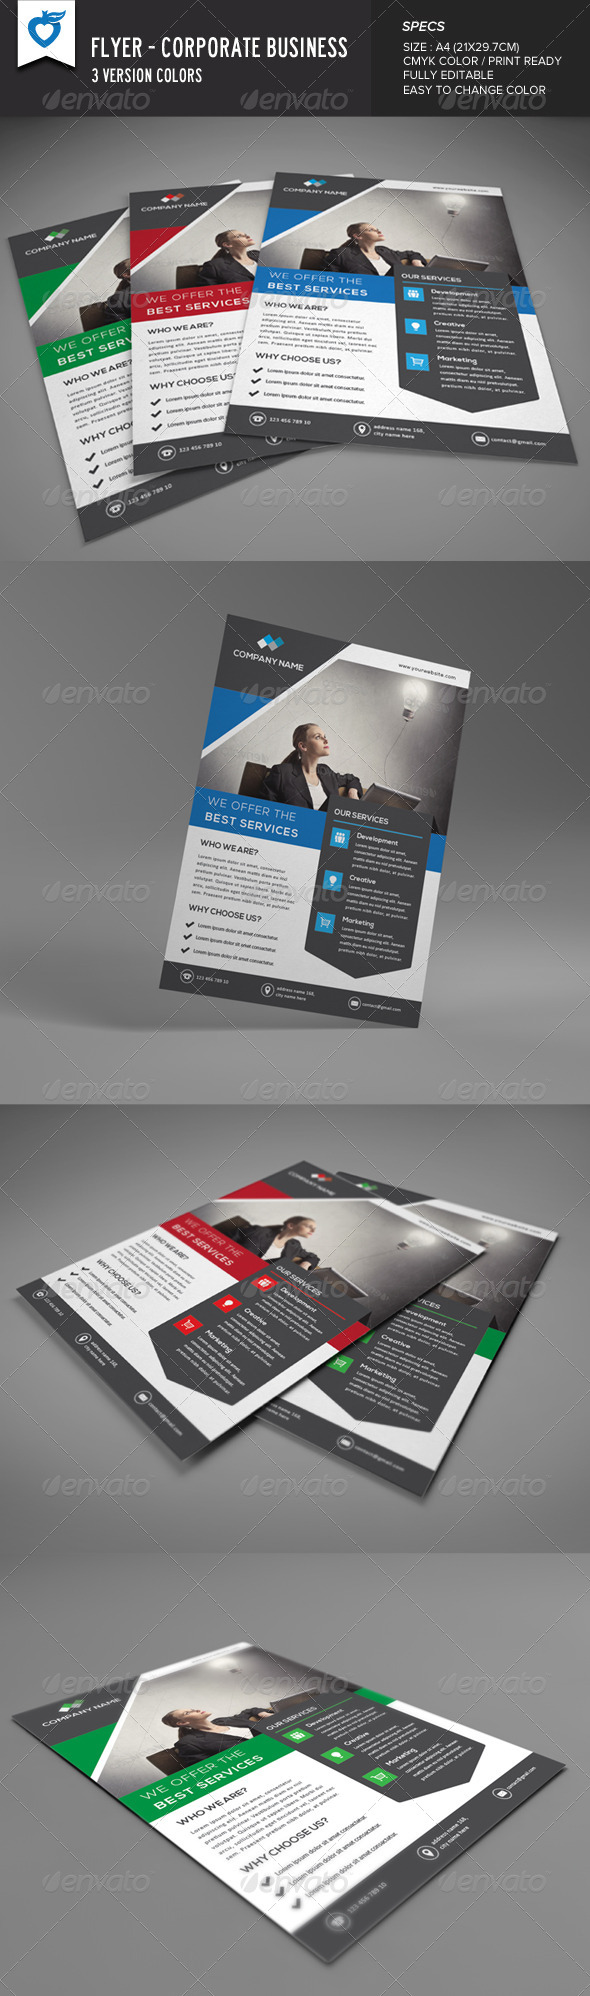 GraphicRiver Flyer Corporate Business 8567806